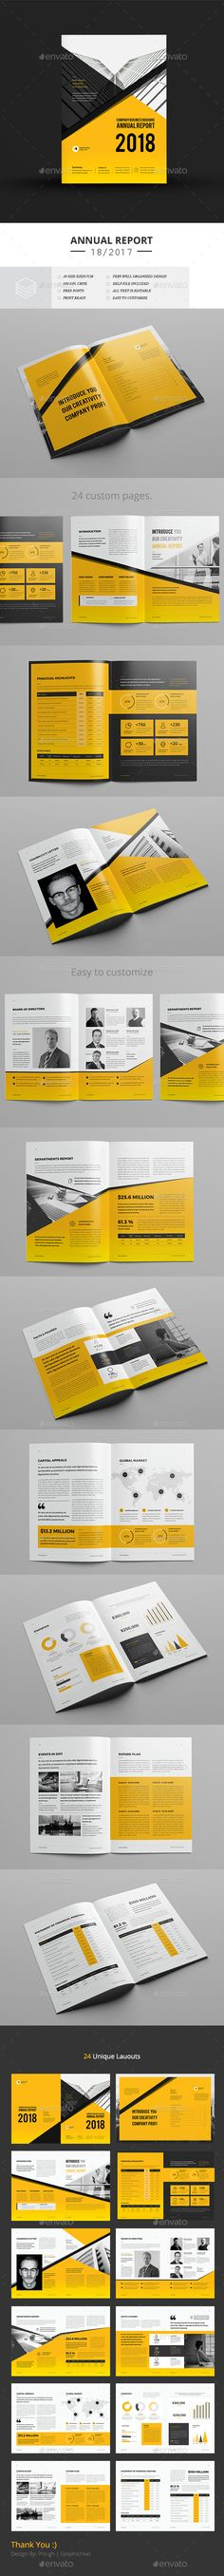 Annual Report — InDesign INDD #elegant #clean • Download ➝ https://graphicriver.net/item/annual-report/20133436?ref=pxcr